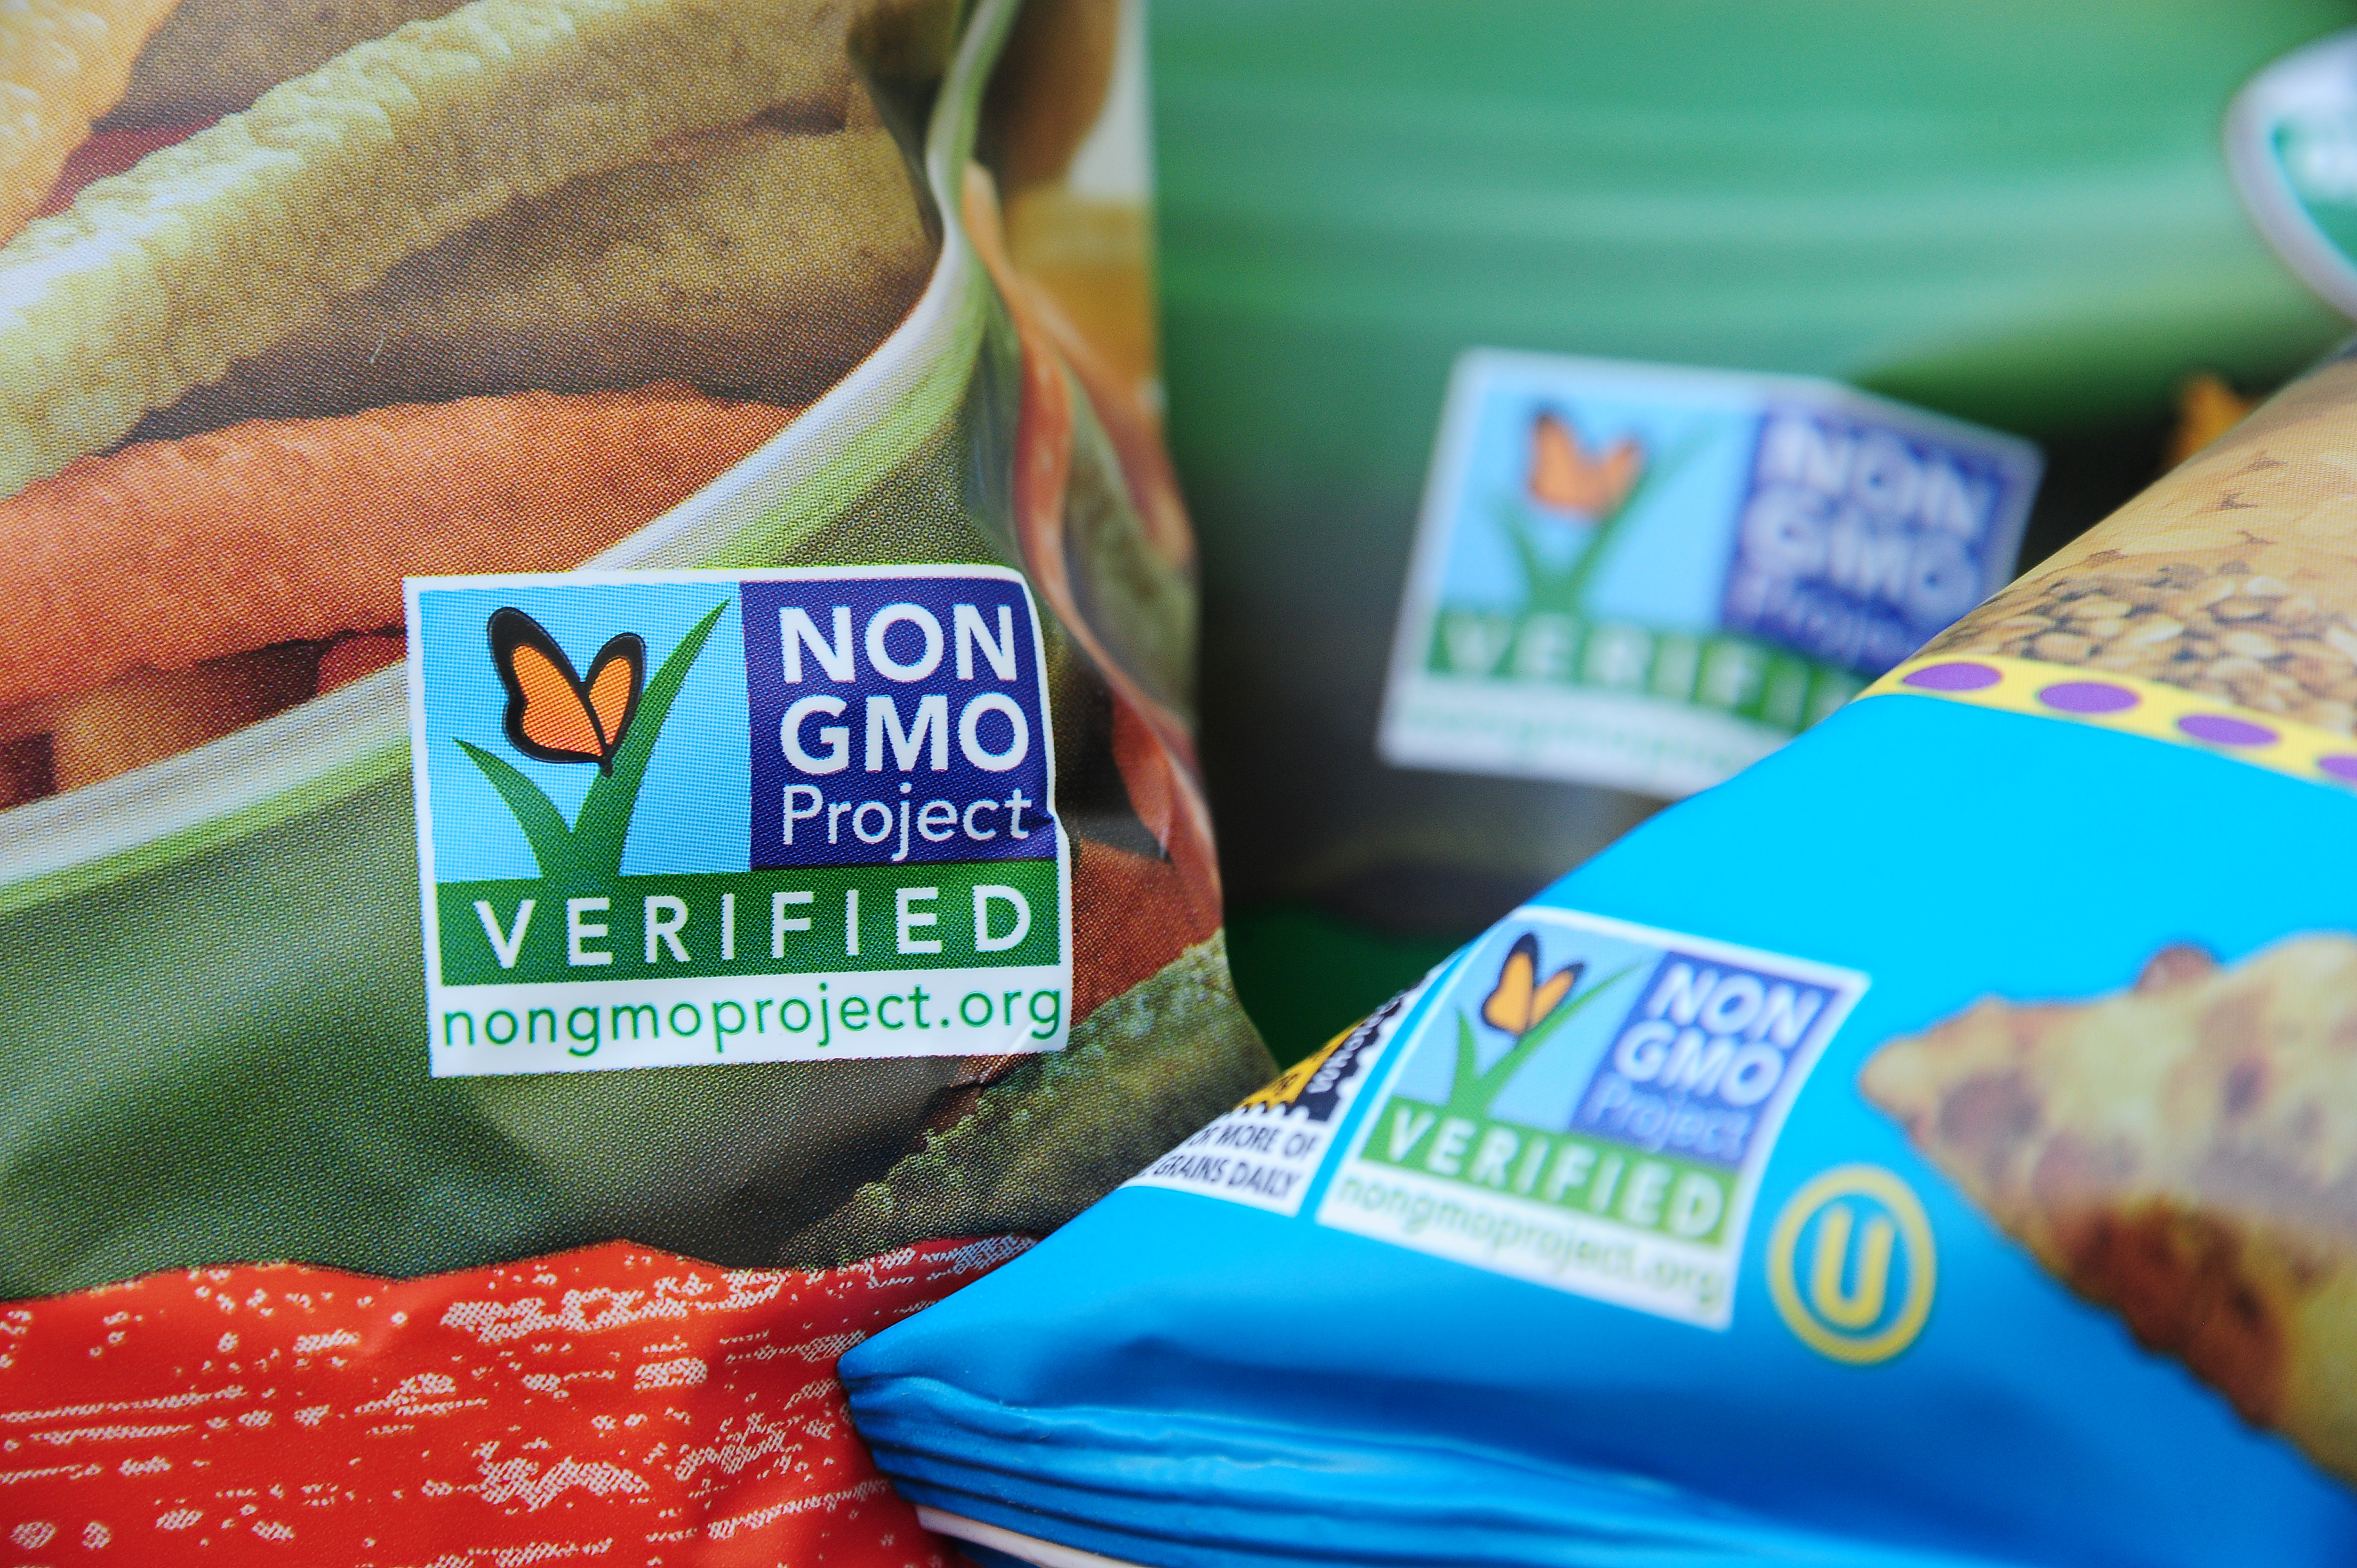 Labels on bags of snack foods indicate they are non-GMO food products, in Los Angeles, California,  Oct. 19, 2012.